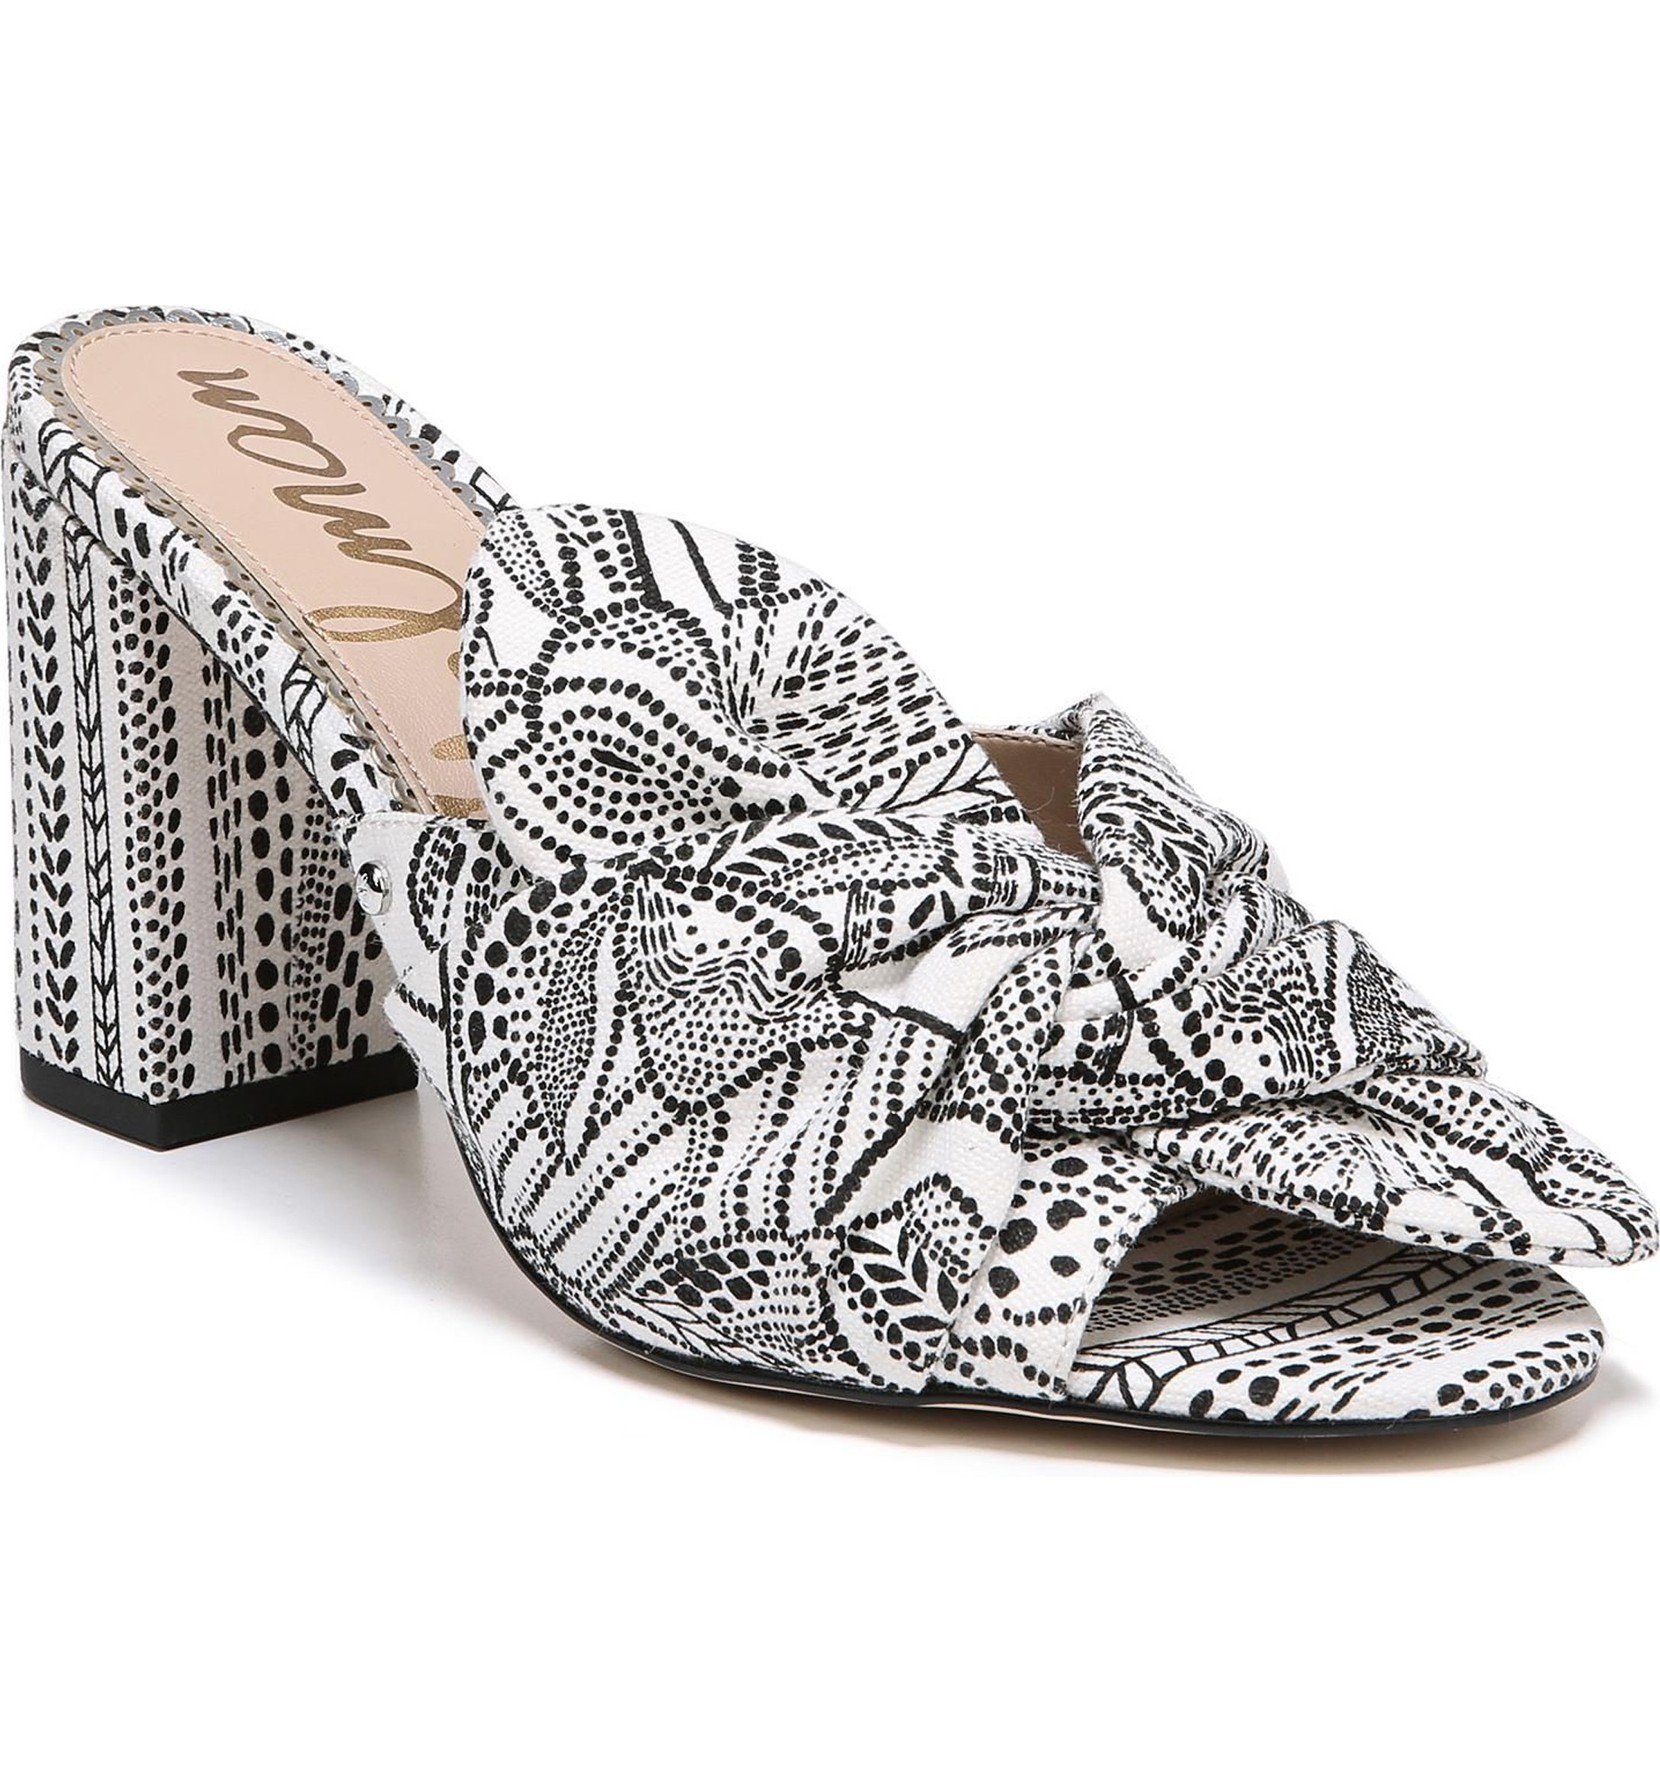 Oda Slide Sandal was originally $119.95 and is now $83.96.<p>A bold pattern enlivens an easy slide sandal lofted by a wrapped block heel.</p><p>(Image: Nordstrom)</p>